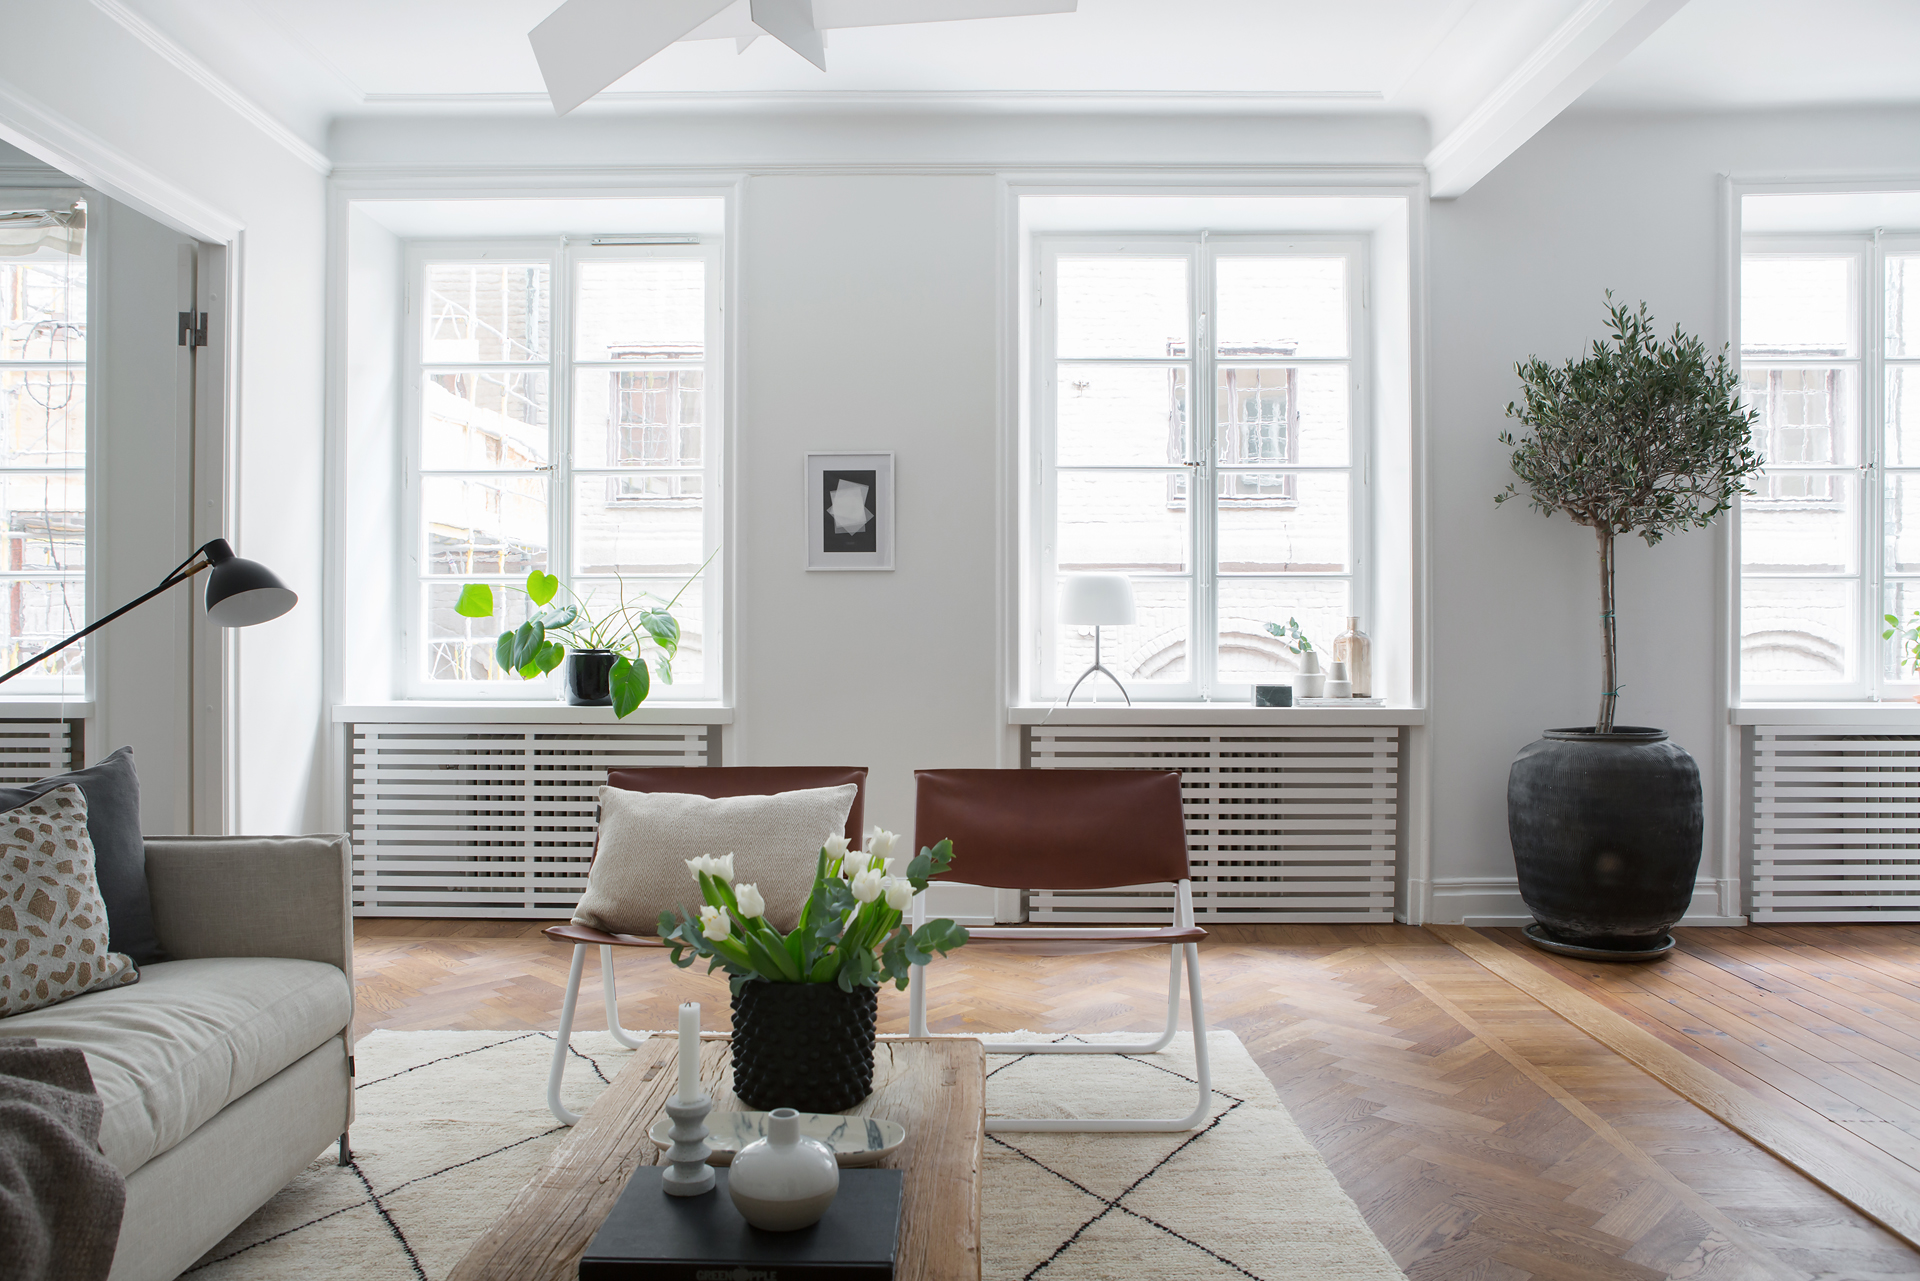 A Swedish living room, Scandinavian home design. Simplified eclecticism